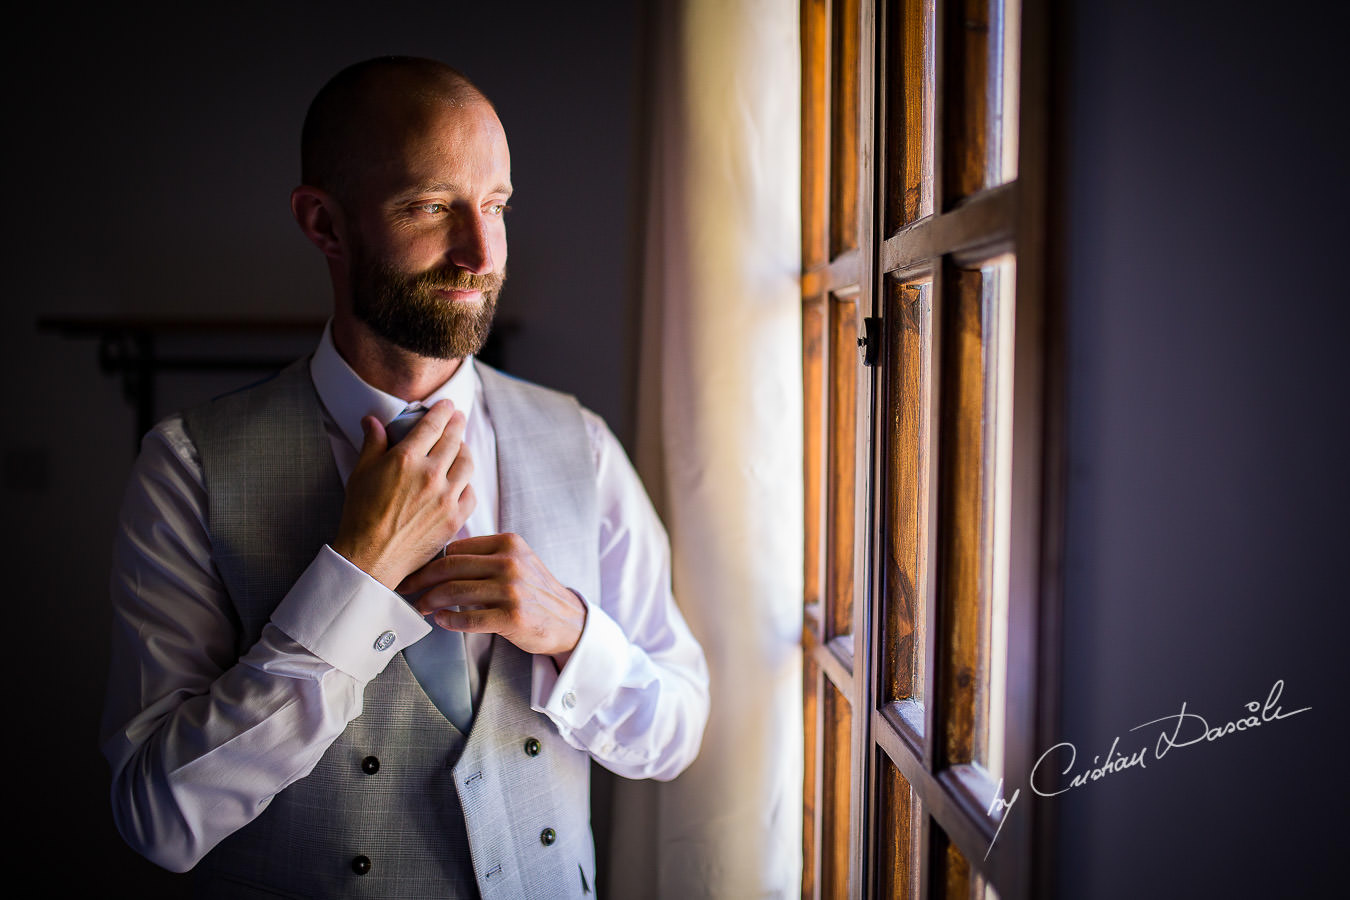 Groom portraiture captured at a Vasilias Nikoklis Inn Wedding in Paphos. Cyprus Wedding Photography by Cristian Dascalu.